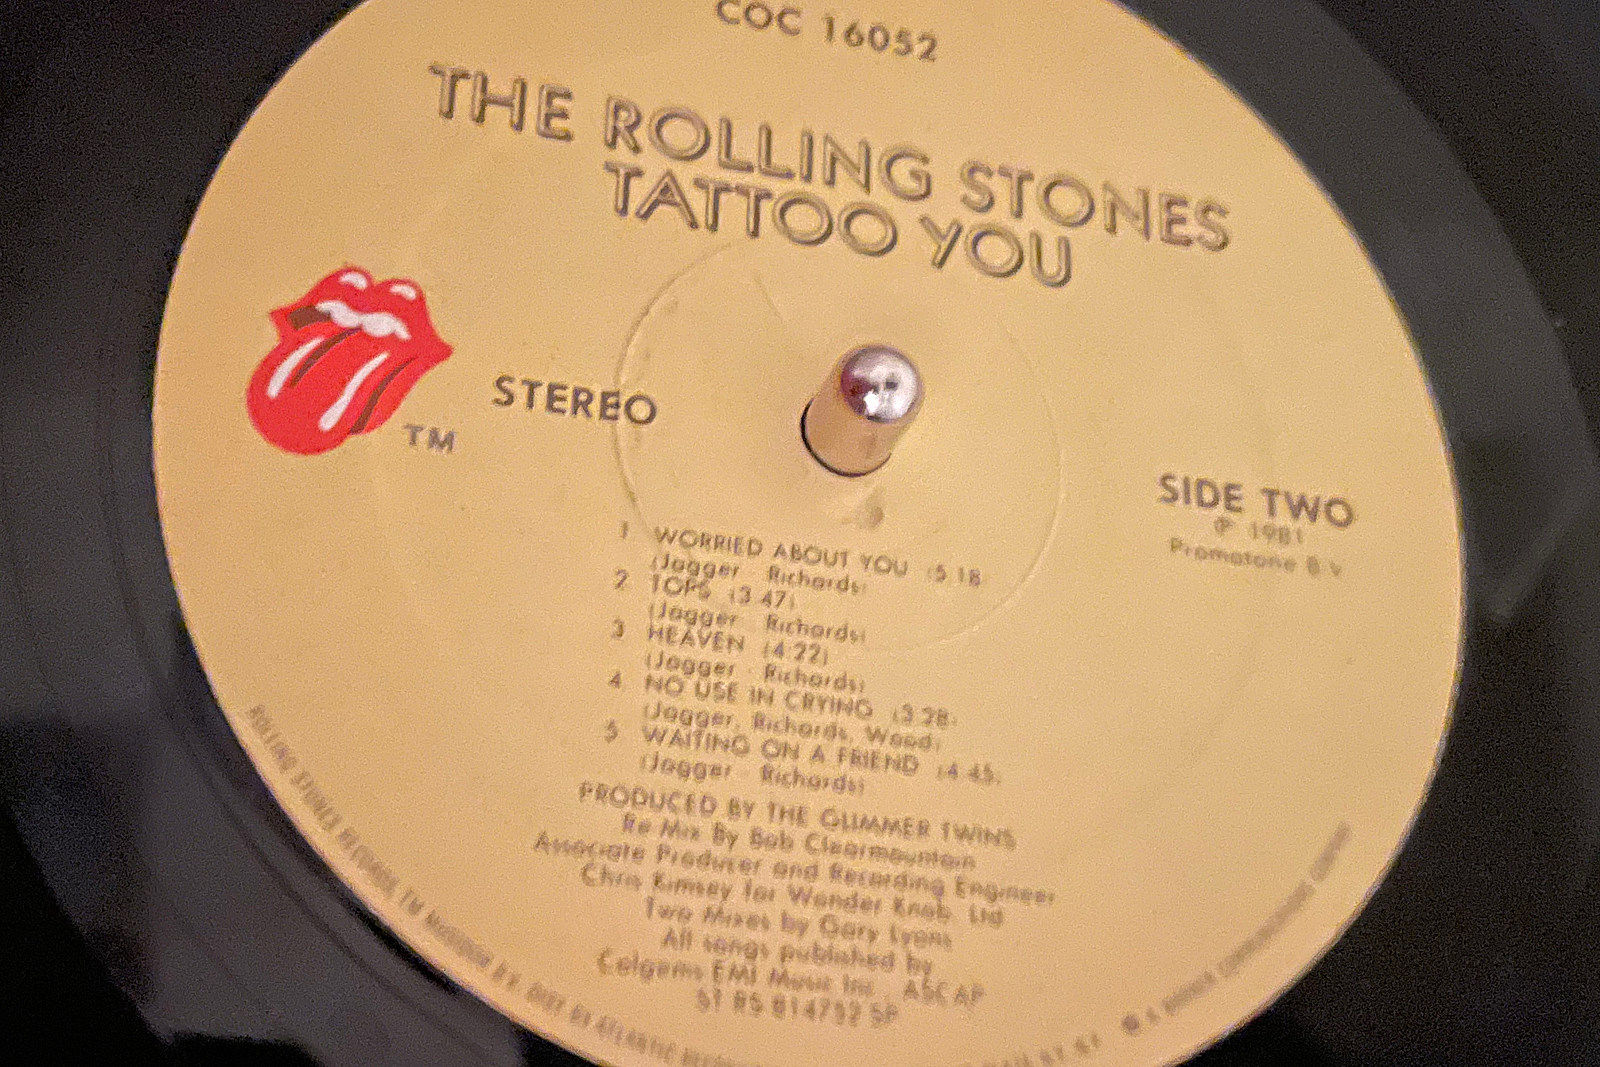 Why Side 2 of 'Tattoo You' Is Among the Rolling Stones' Best Work